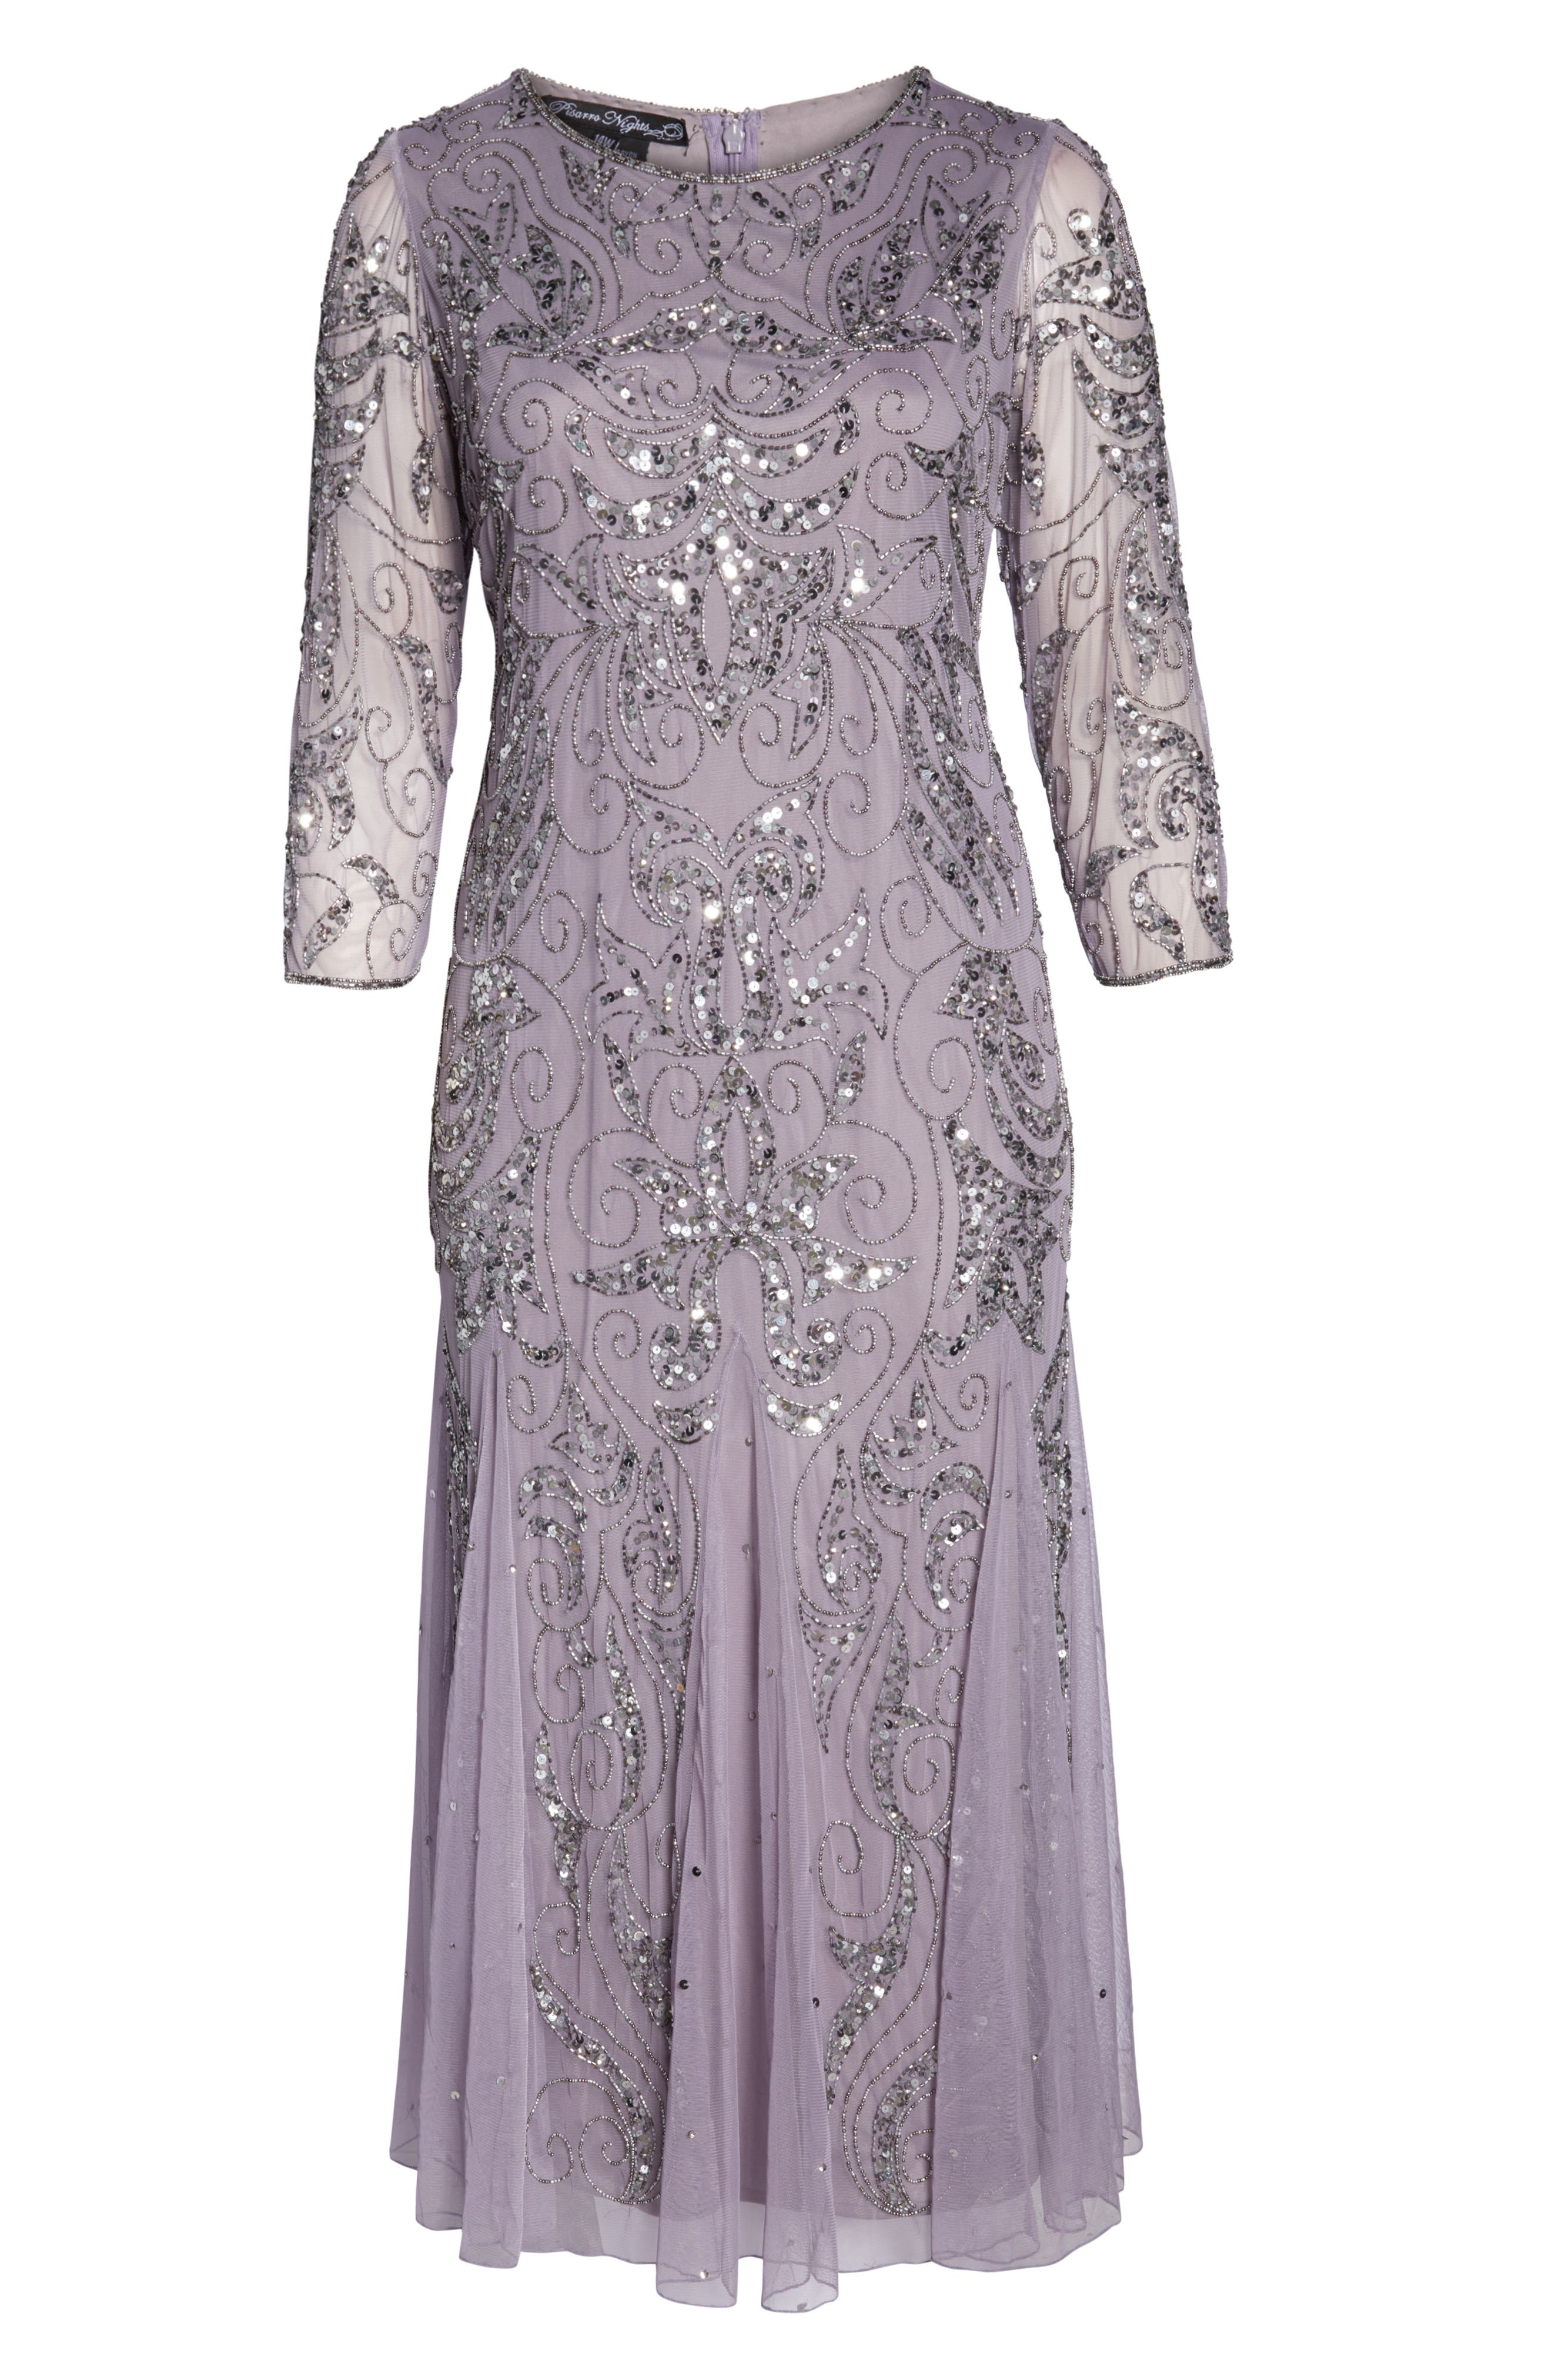 PISARRO NIGHTS, Embellished Three Quarter Sleeve Gown, Alternate thumbnail 7, color, NEW LAVENDER